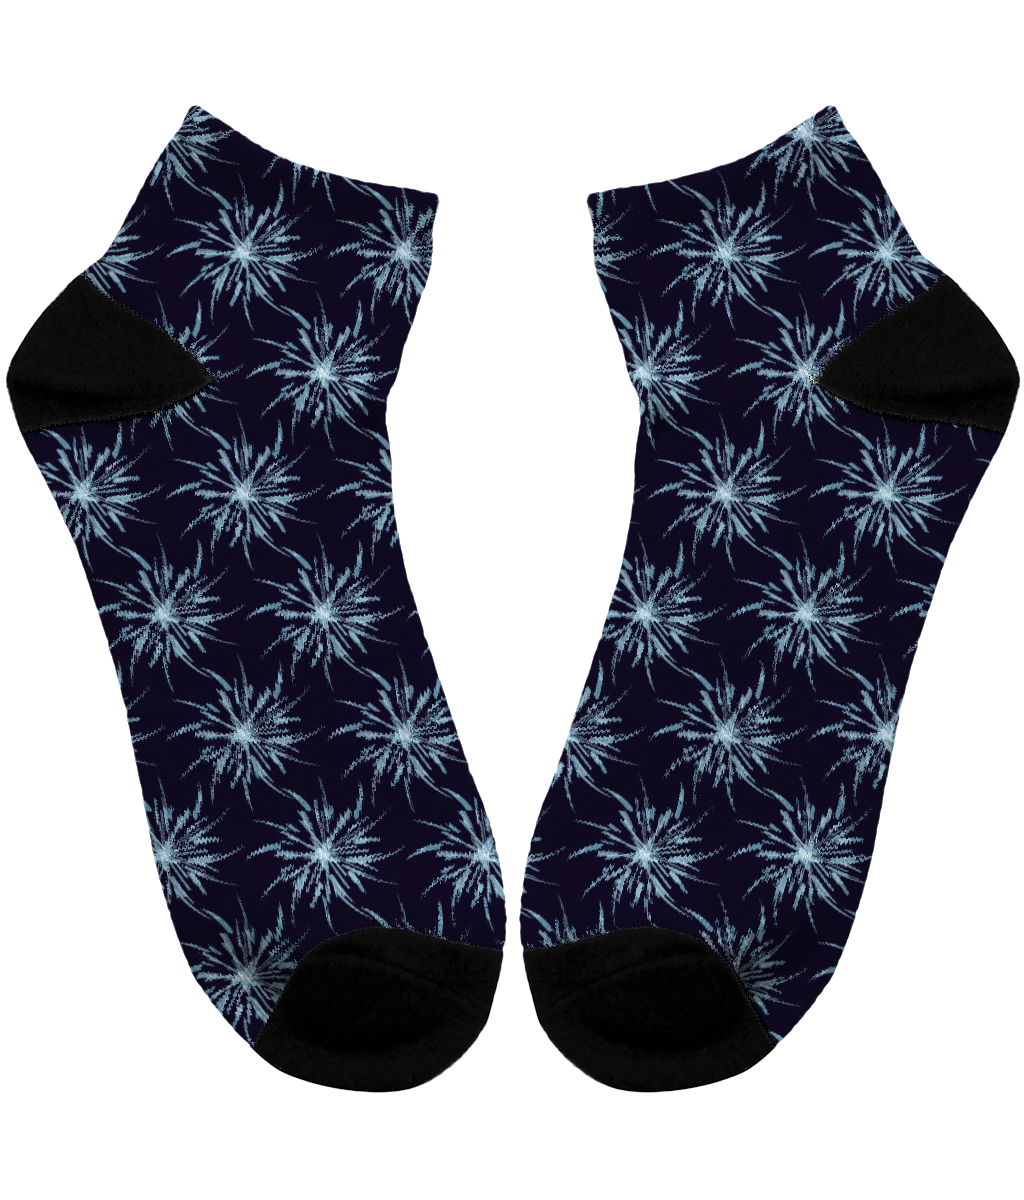 Christmas Snowflakes Pattern - Unisex Sublimation Ankle Socks by Daniel Bevis